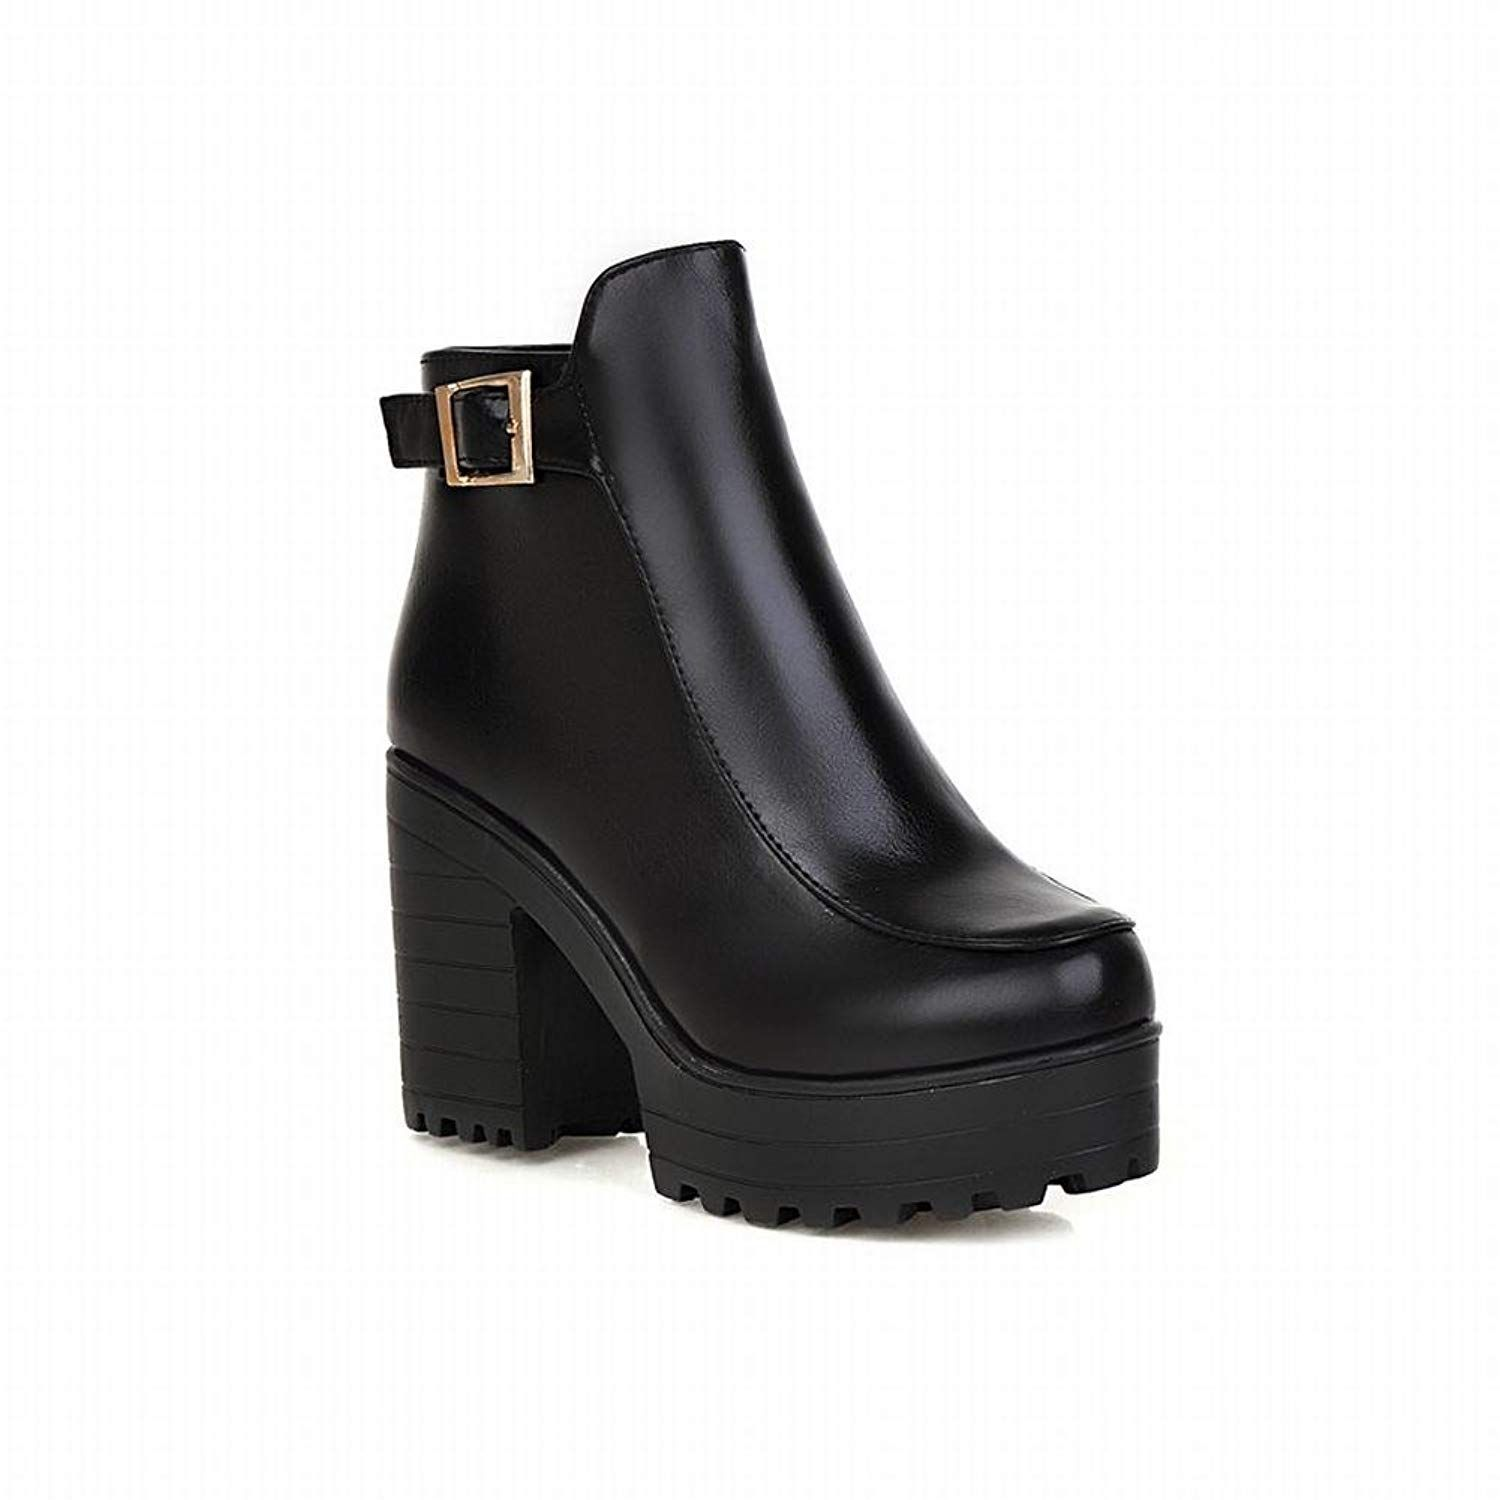 8fca55ab208d Latasa Women s Fashion Cold-weather Buckle Strap Block High-heel Platform  Ankle Boots    You can get additional details at the image link.